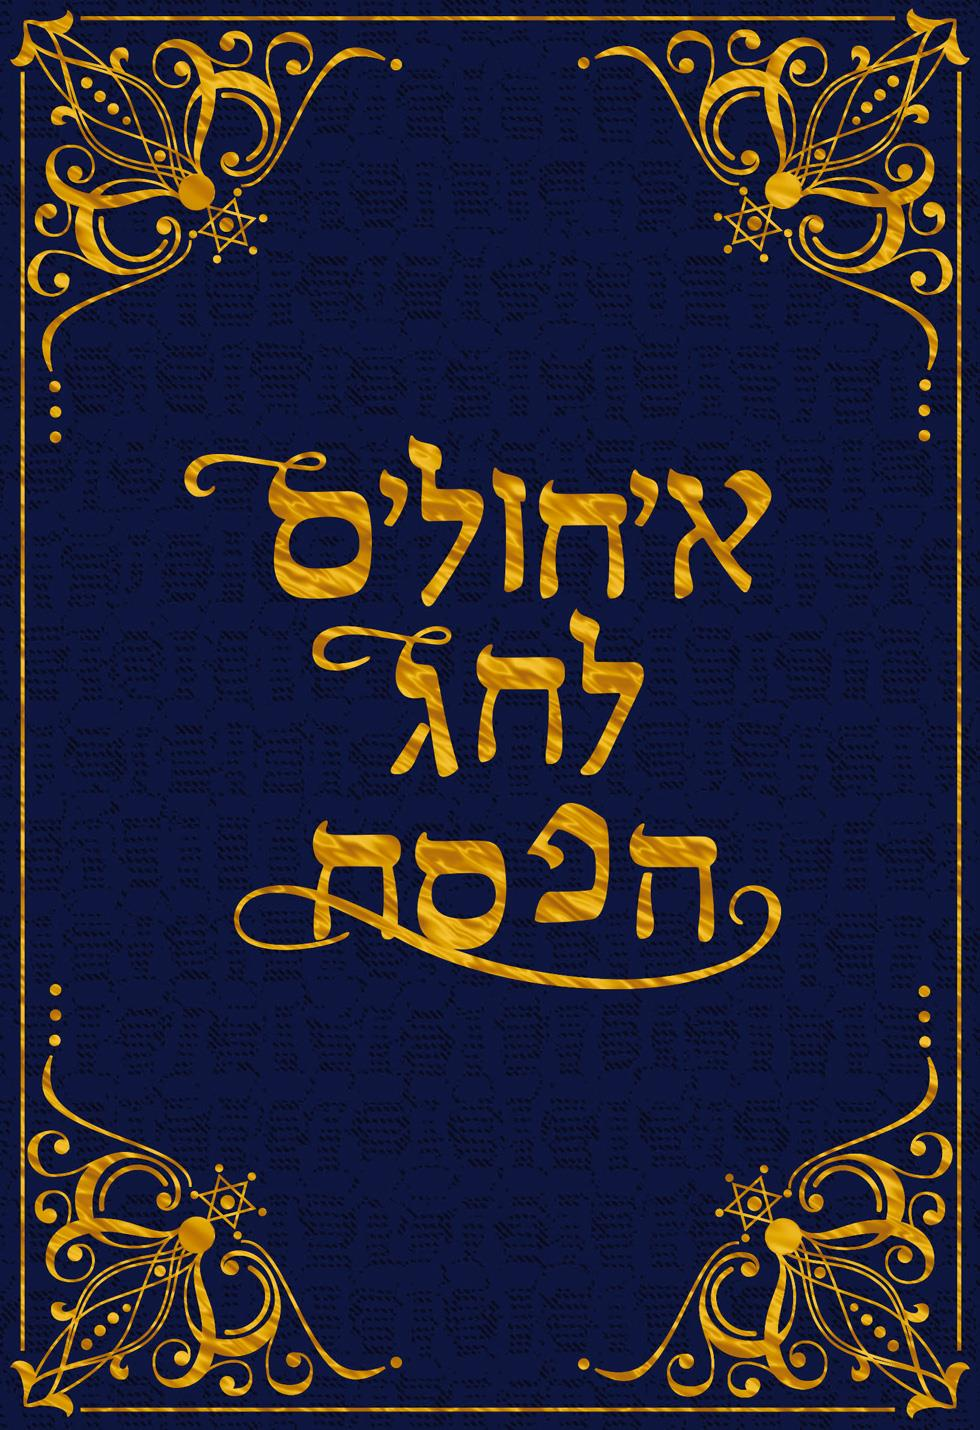 Gold Foil Hebrew Letters And Star Of David Passover Card